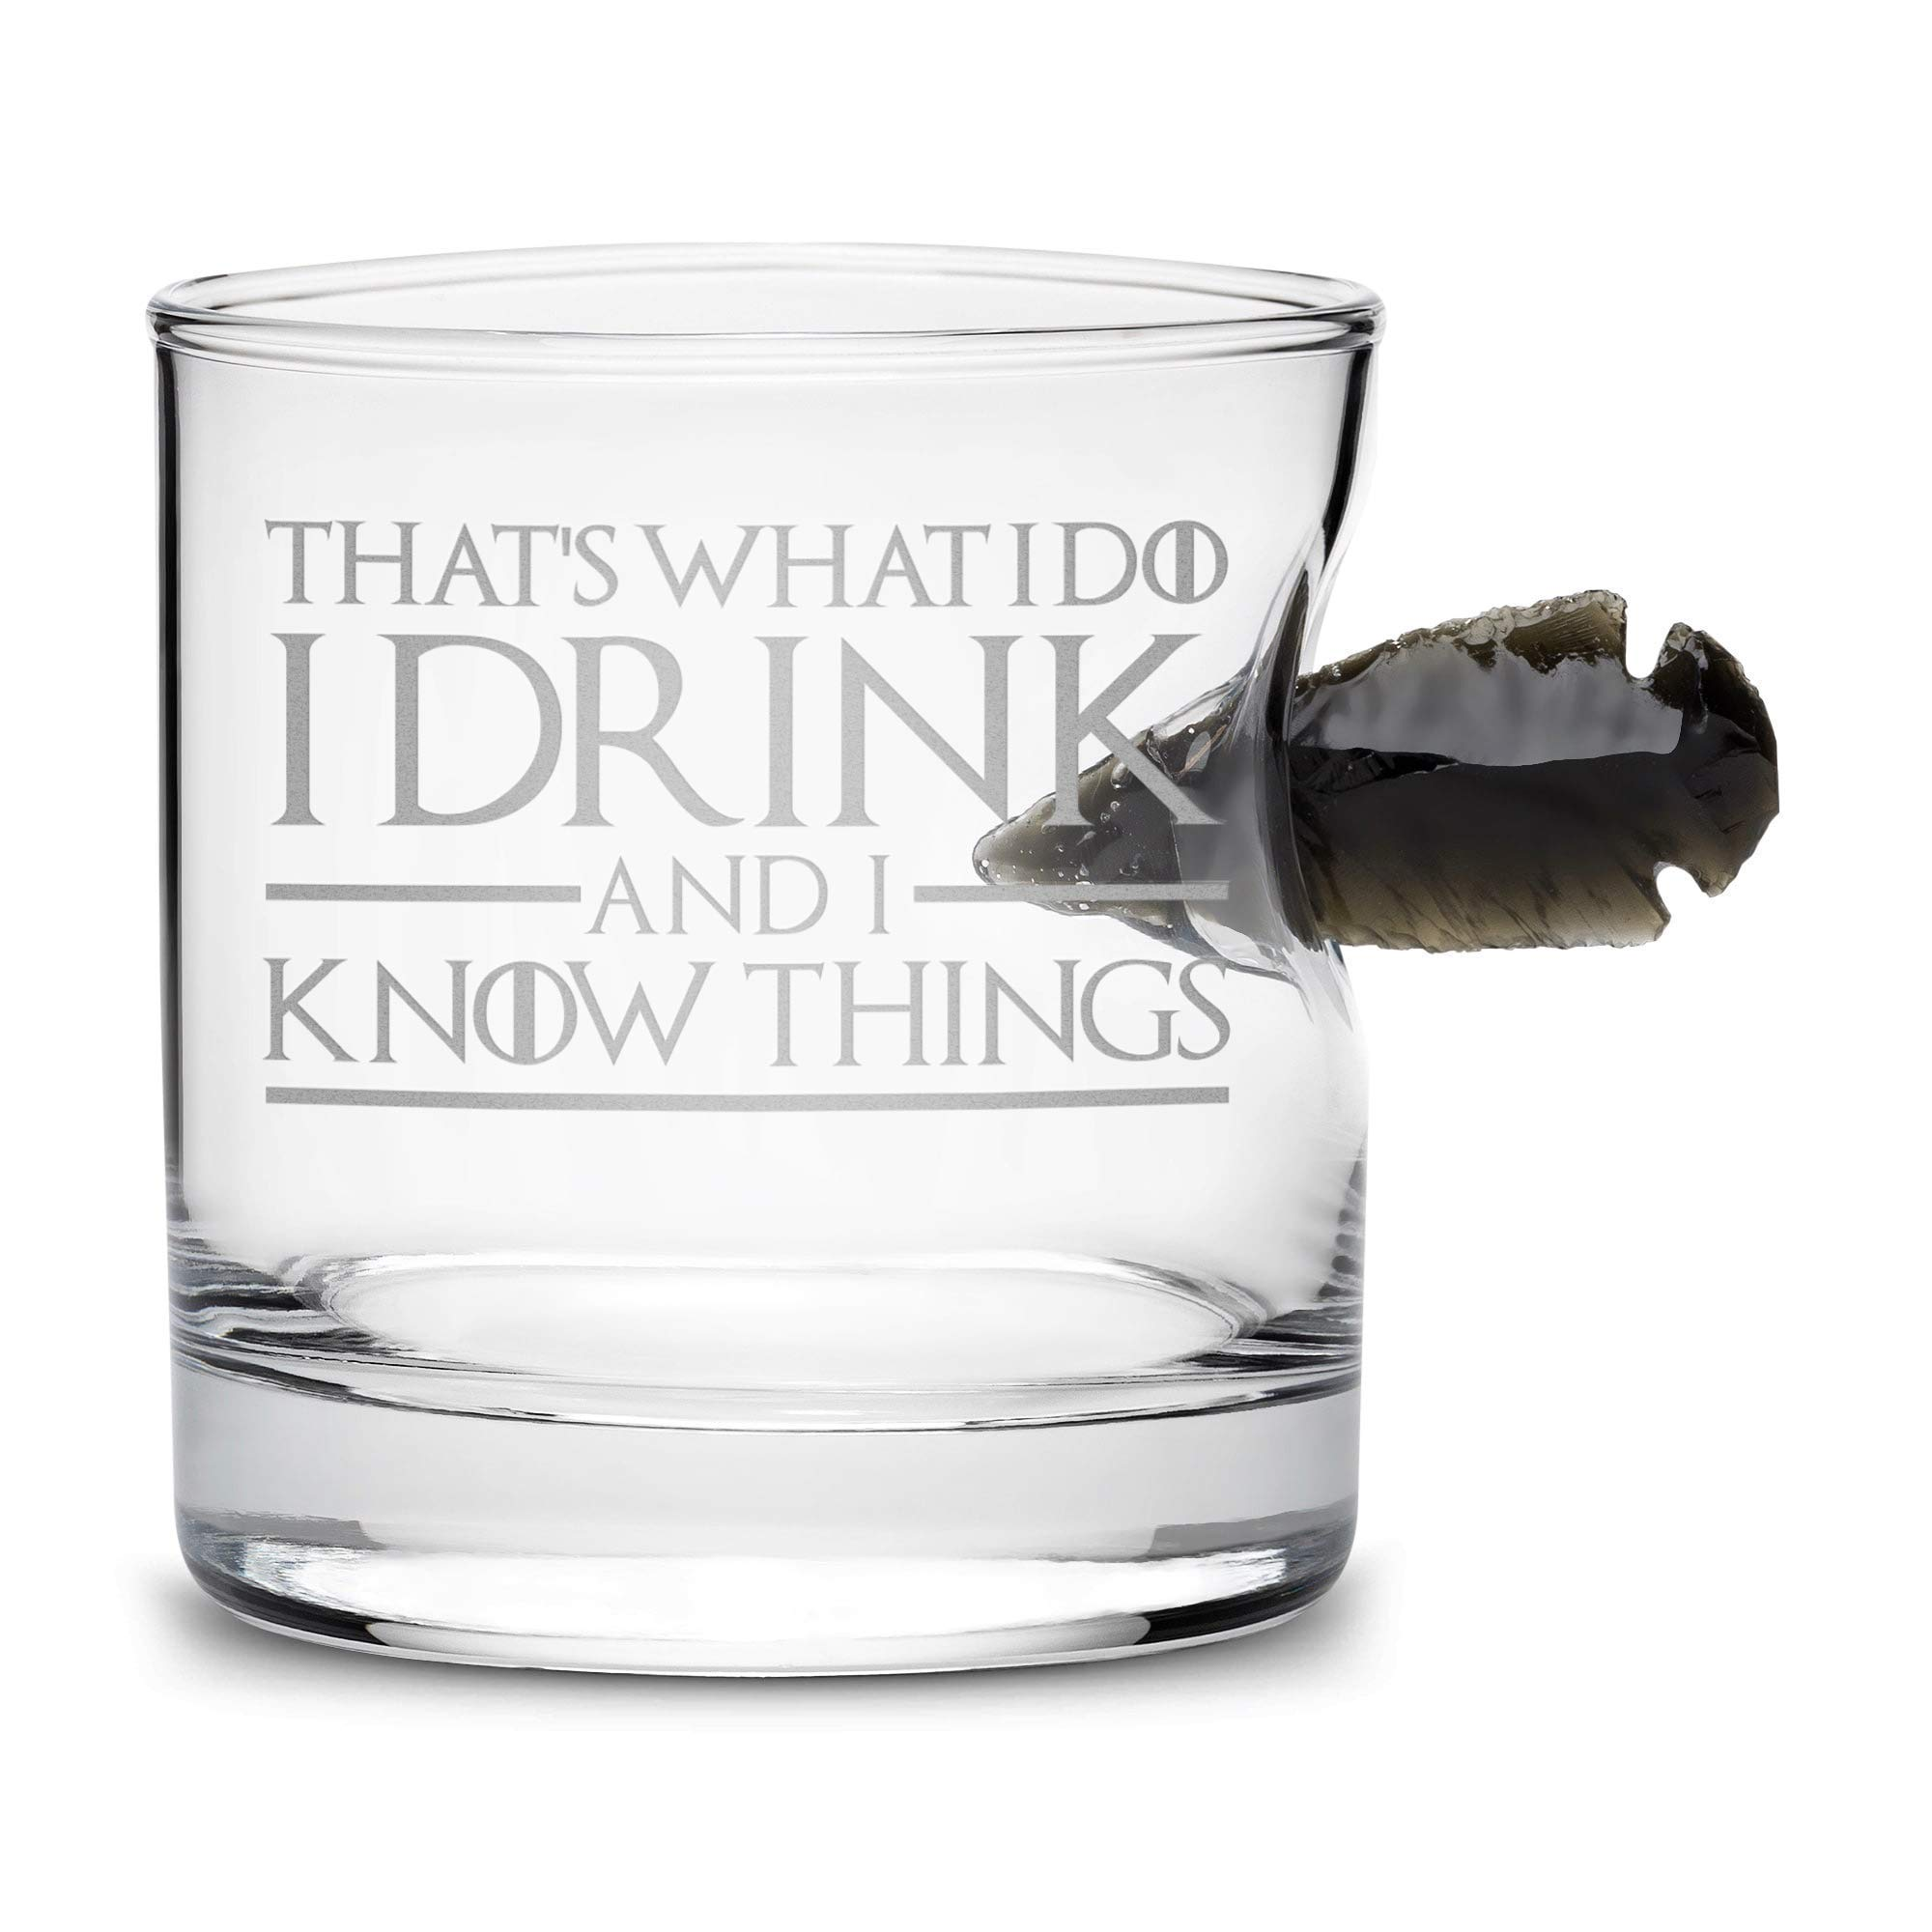 Limited Edition Game of Thrones Whiskey Dragon Glass Obsidian Arrowhead, Thats What I Do I Drink and I Know Things, Hand Etched 11oz Rocks Glass, Made in USA, Sand Carved by Integrity Bottles